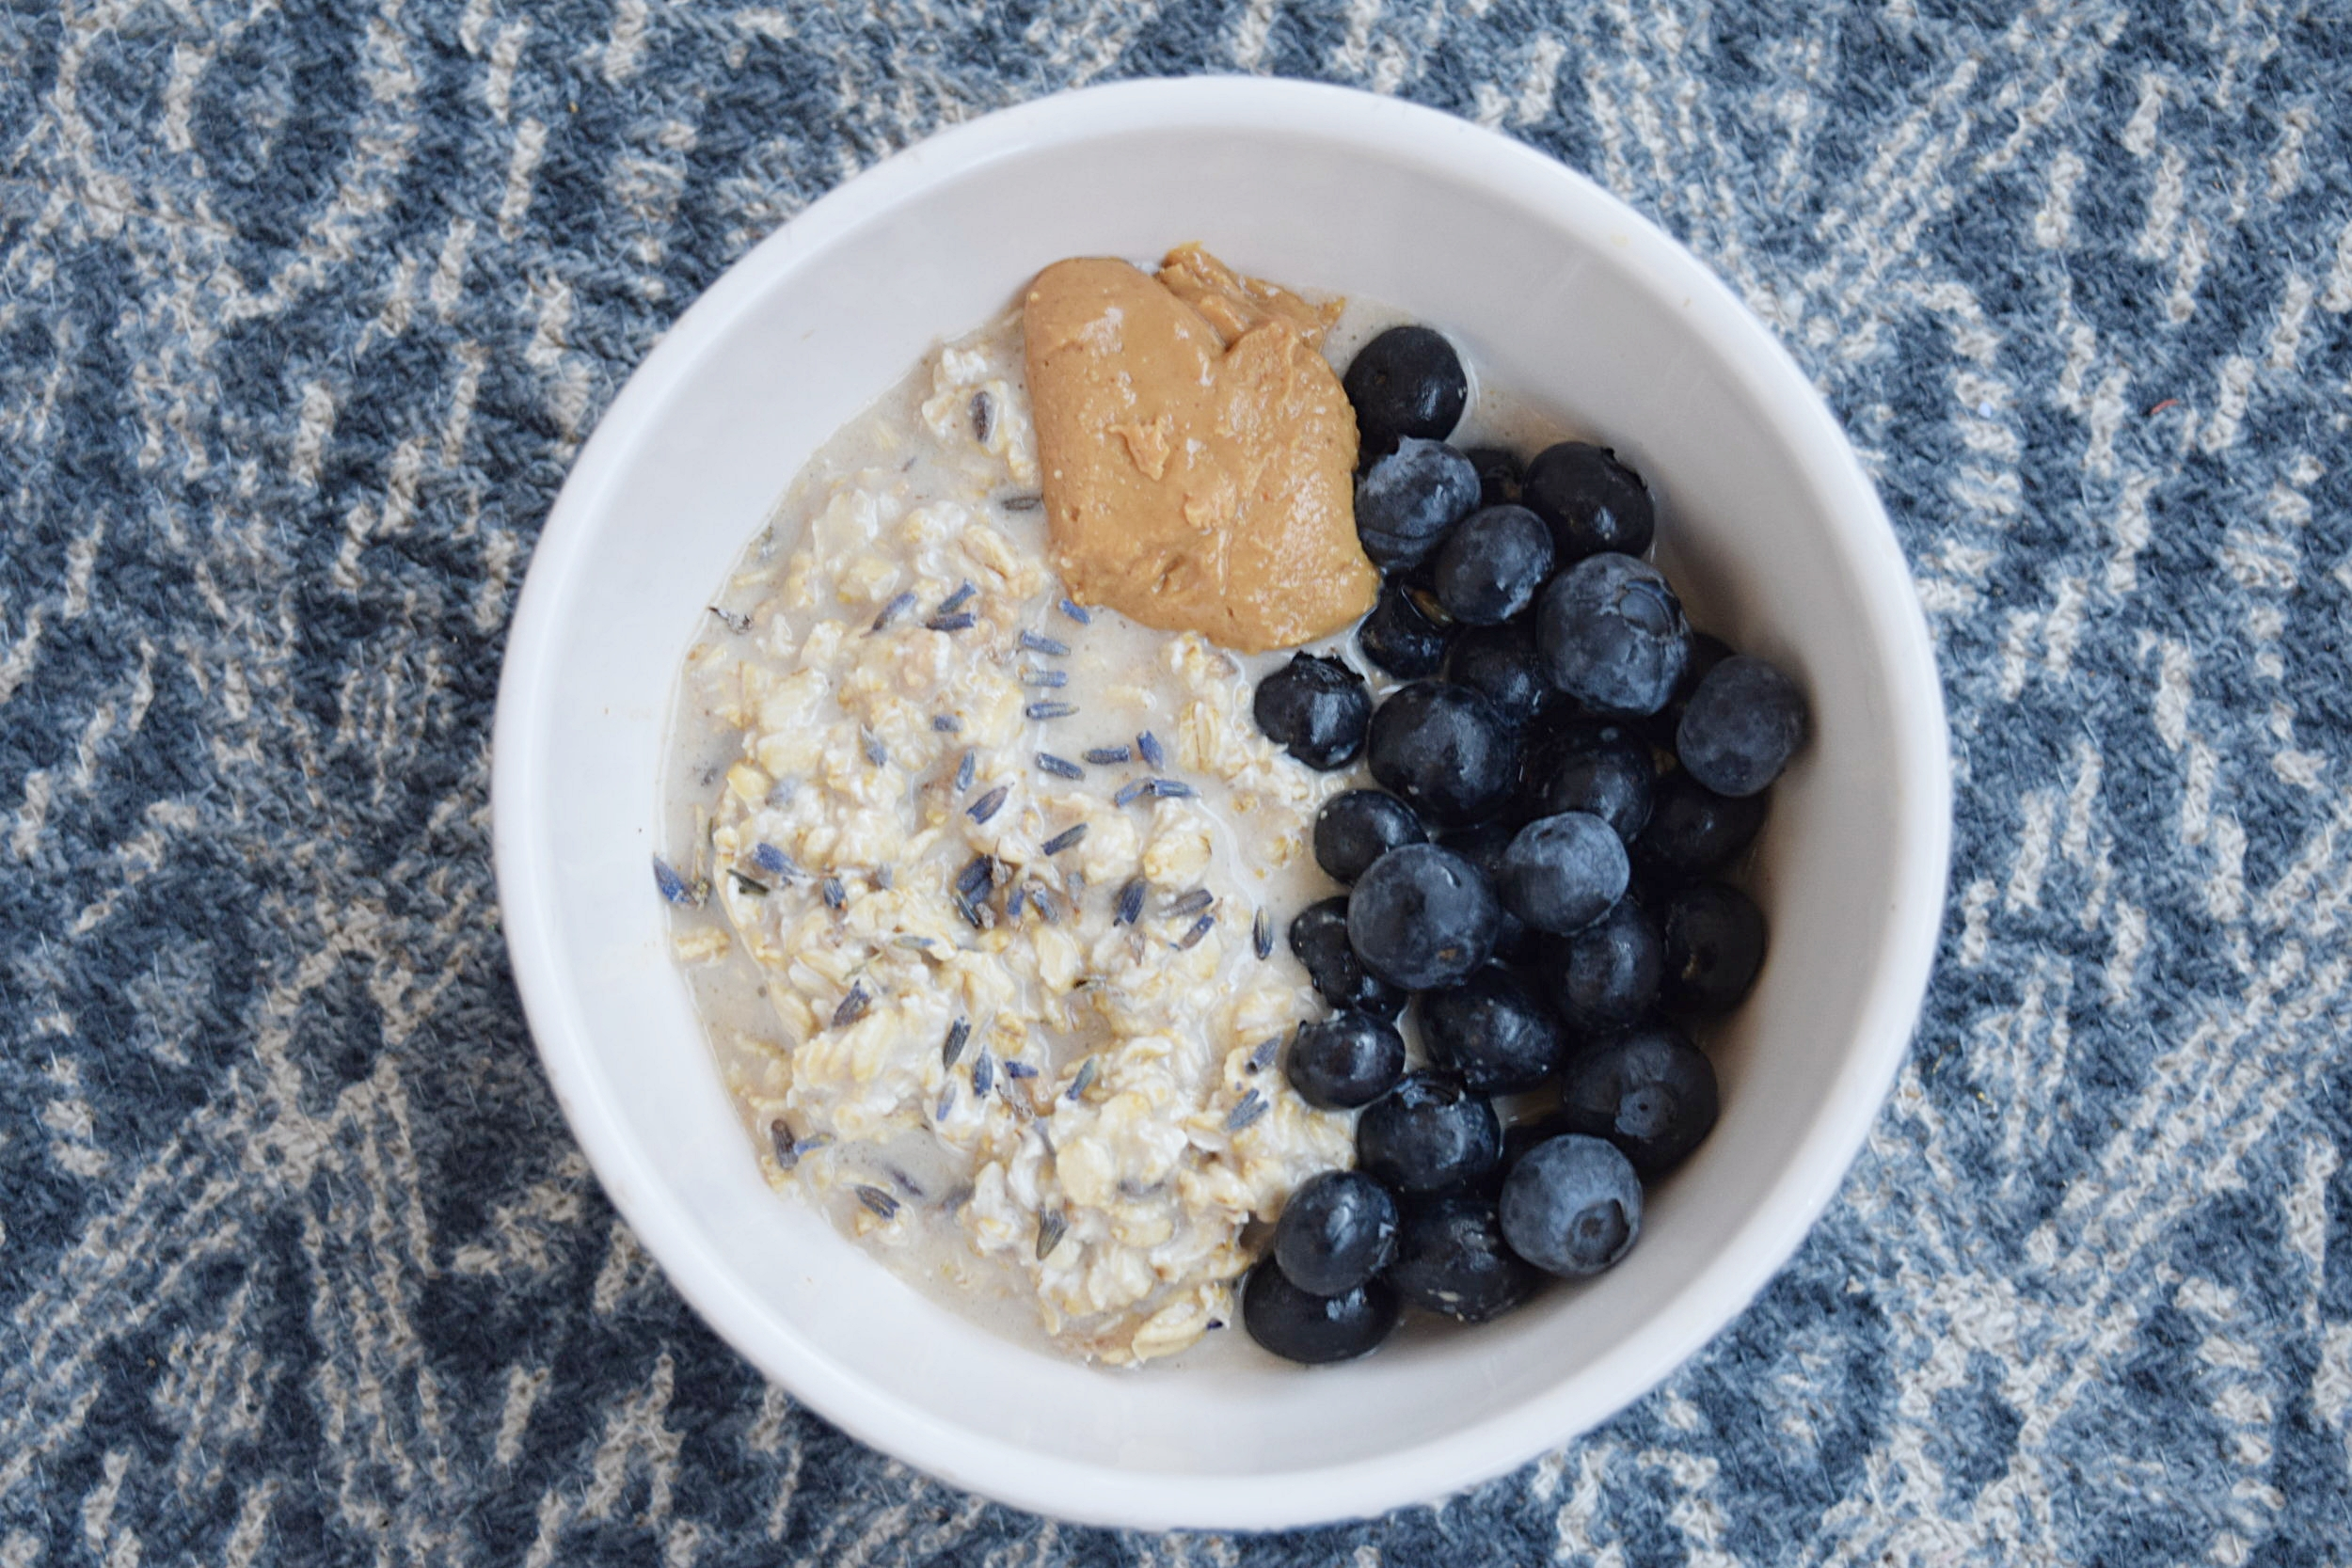 Lavender and Honey Overnight Oats